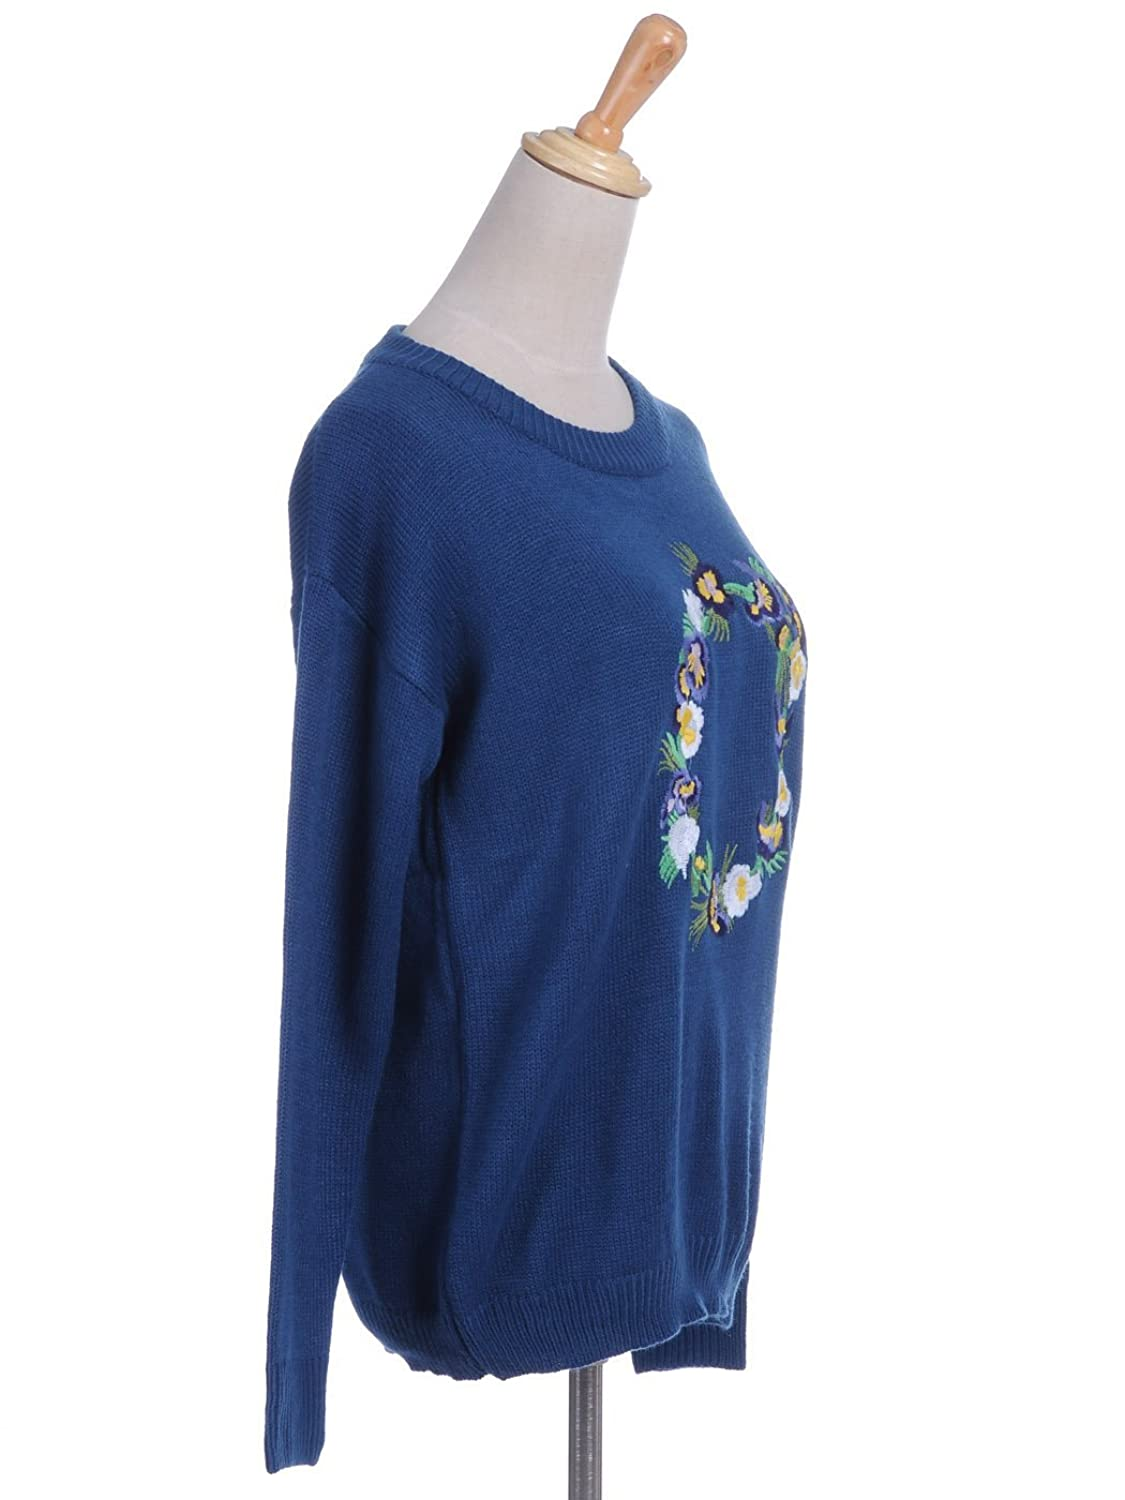 Anna-Kaci S/M Fit Blue Thin Waffle Knit Multicoloured Floral Wreath Sweater